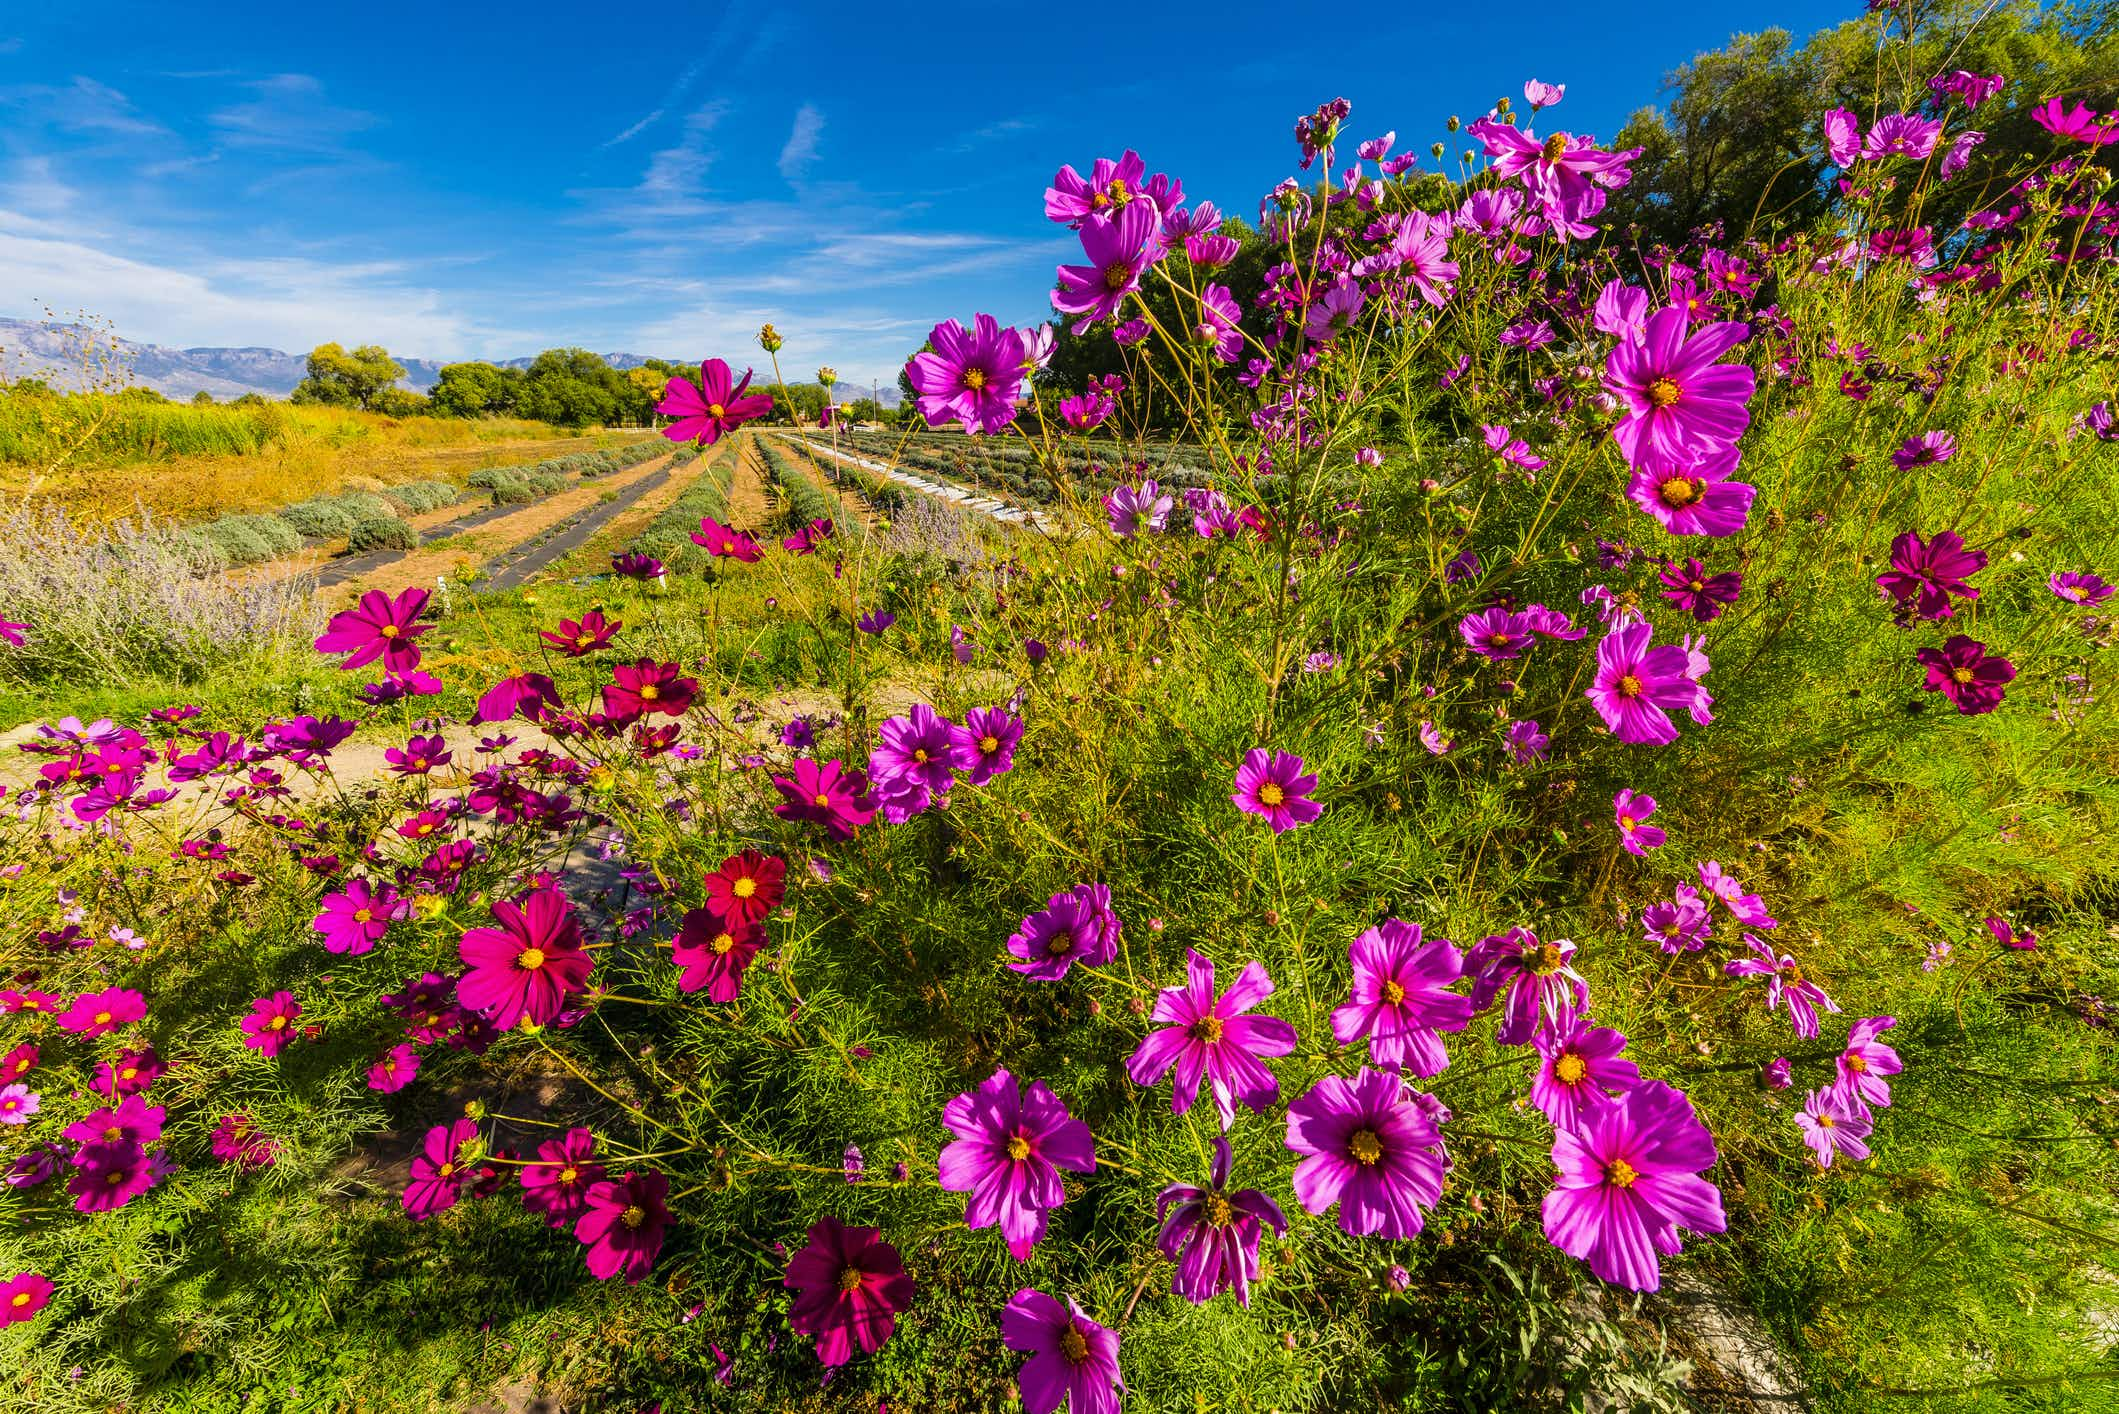 Wildflowers abound at this historic agritourism destination in Albuquerque. New Mexico ©Blaine Harrington III via Getty Images